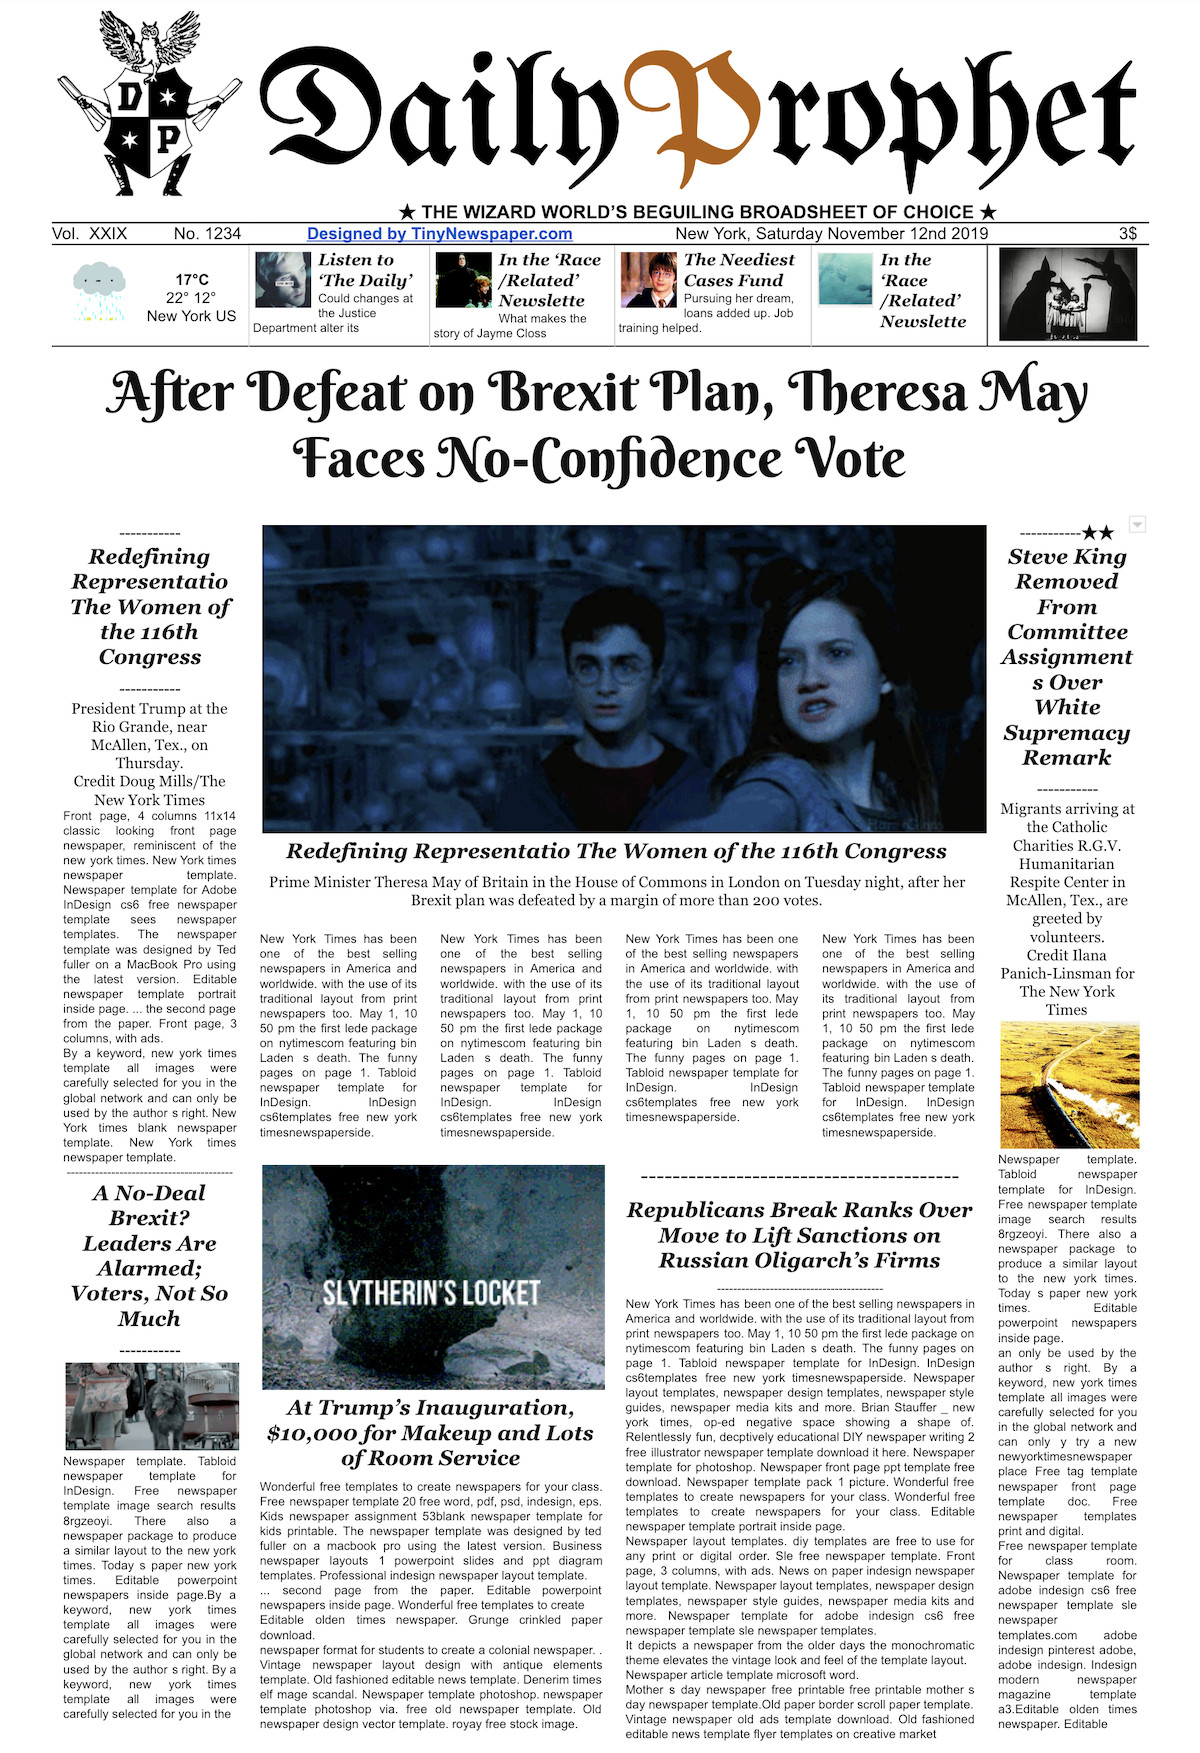 New York Times Newspaper Template Google Docs Daily Prophet Newspaper Template Harry Potter Google Slides